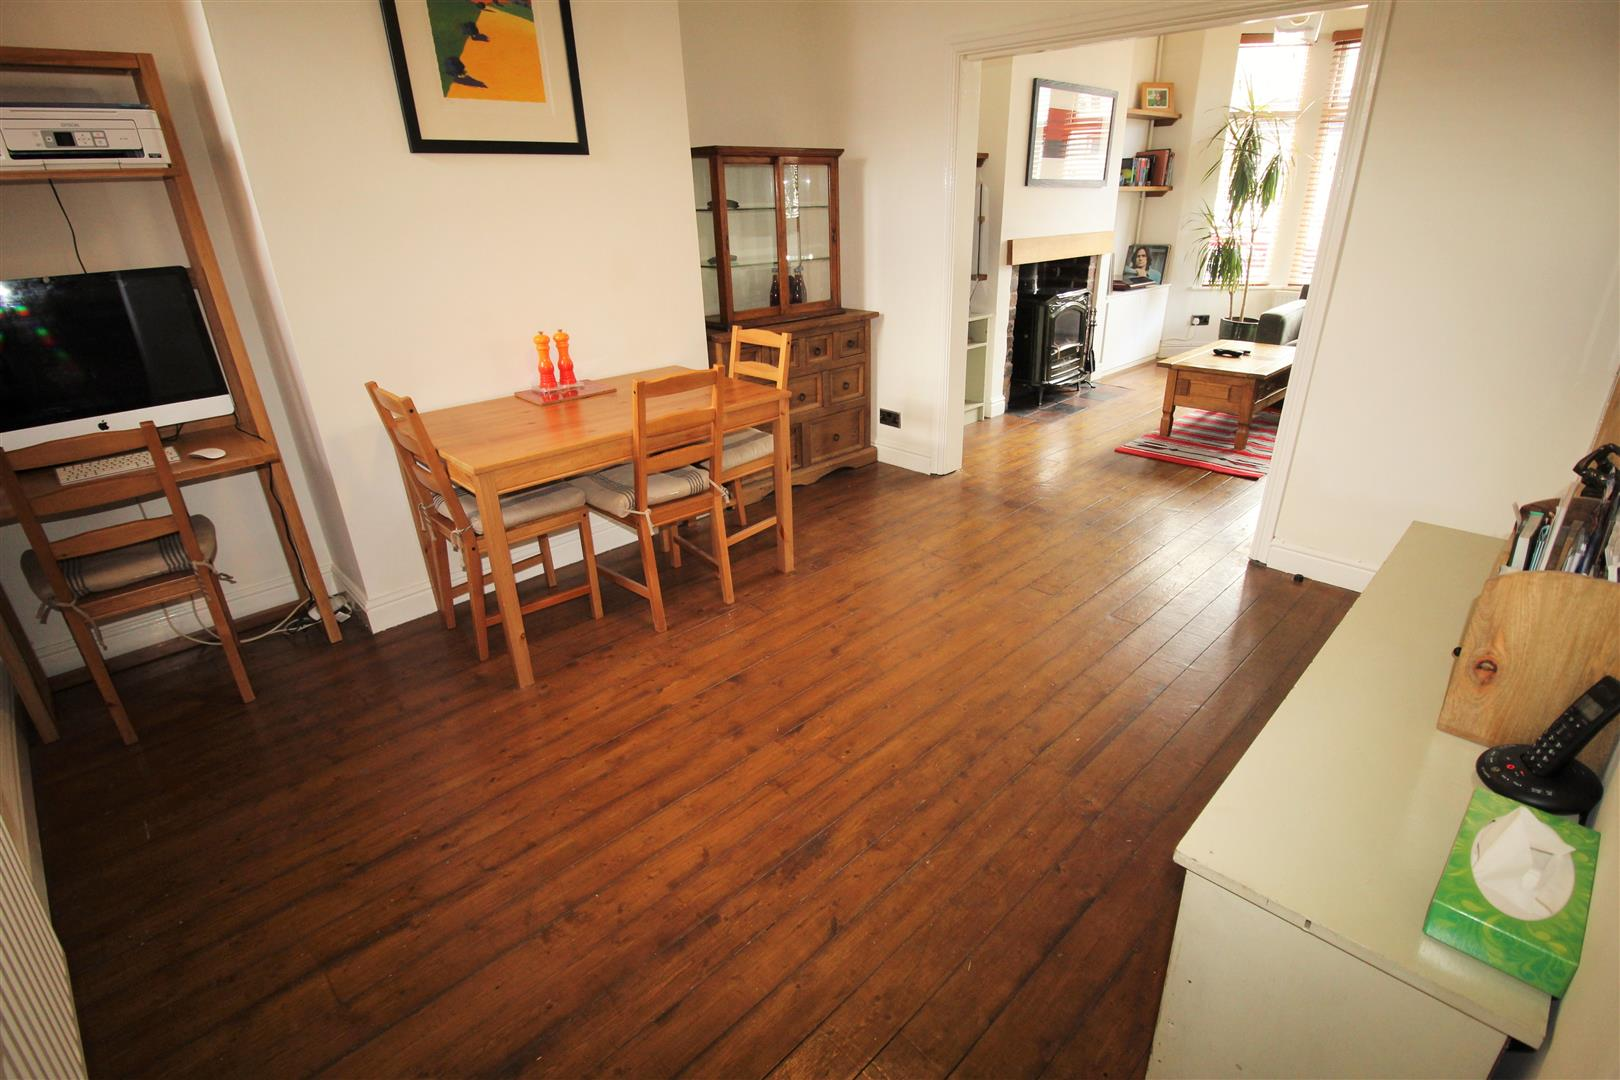 3 Bedrooms, House - Terraced, Albany Road, Aintree, Liverpool